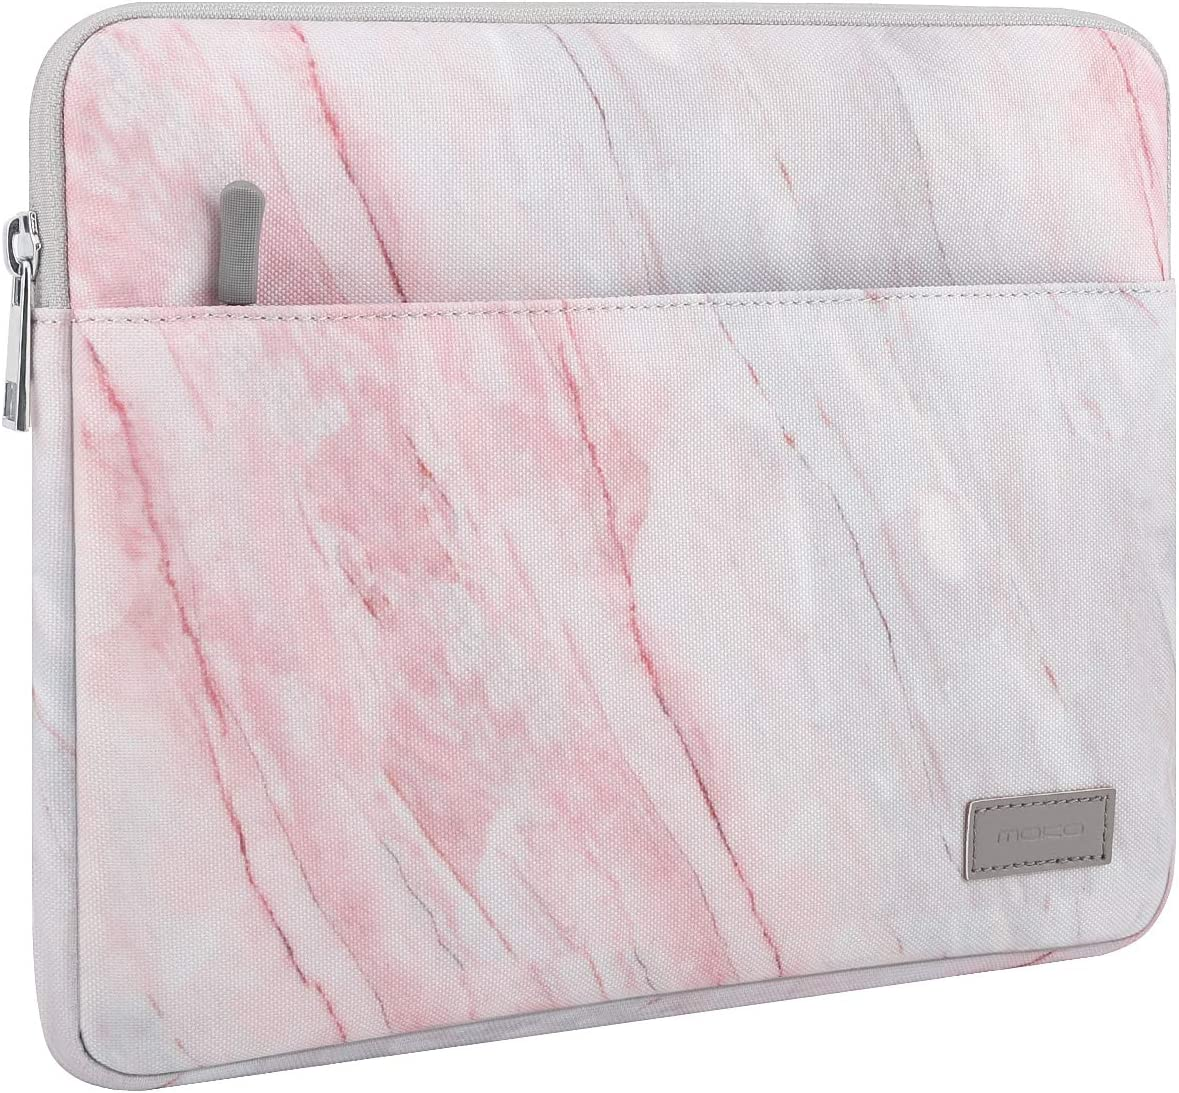 MoKo 13-13.3 Inch Laptop Sleeve Fits MacBook Air 13-inch Retina, MacBook Pro 13 Inch, Protective Notebook Computer Case Cover Polyester Bag with Accessory Pocket - Pink Gray Marble